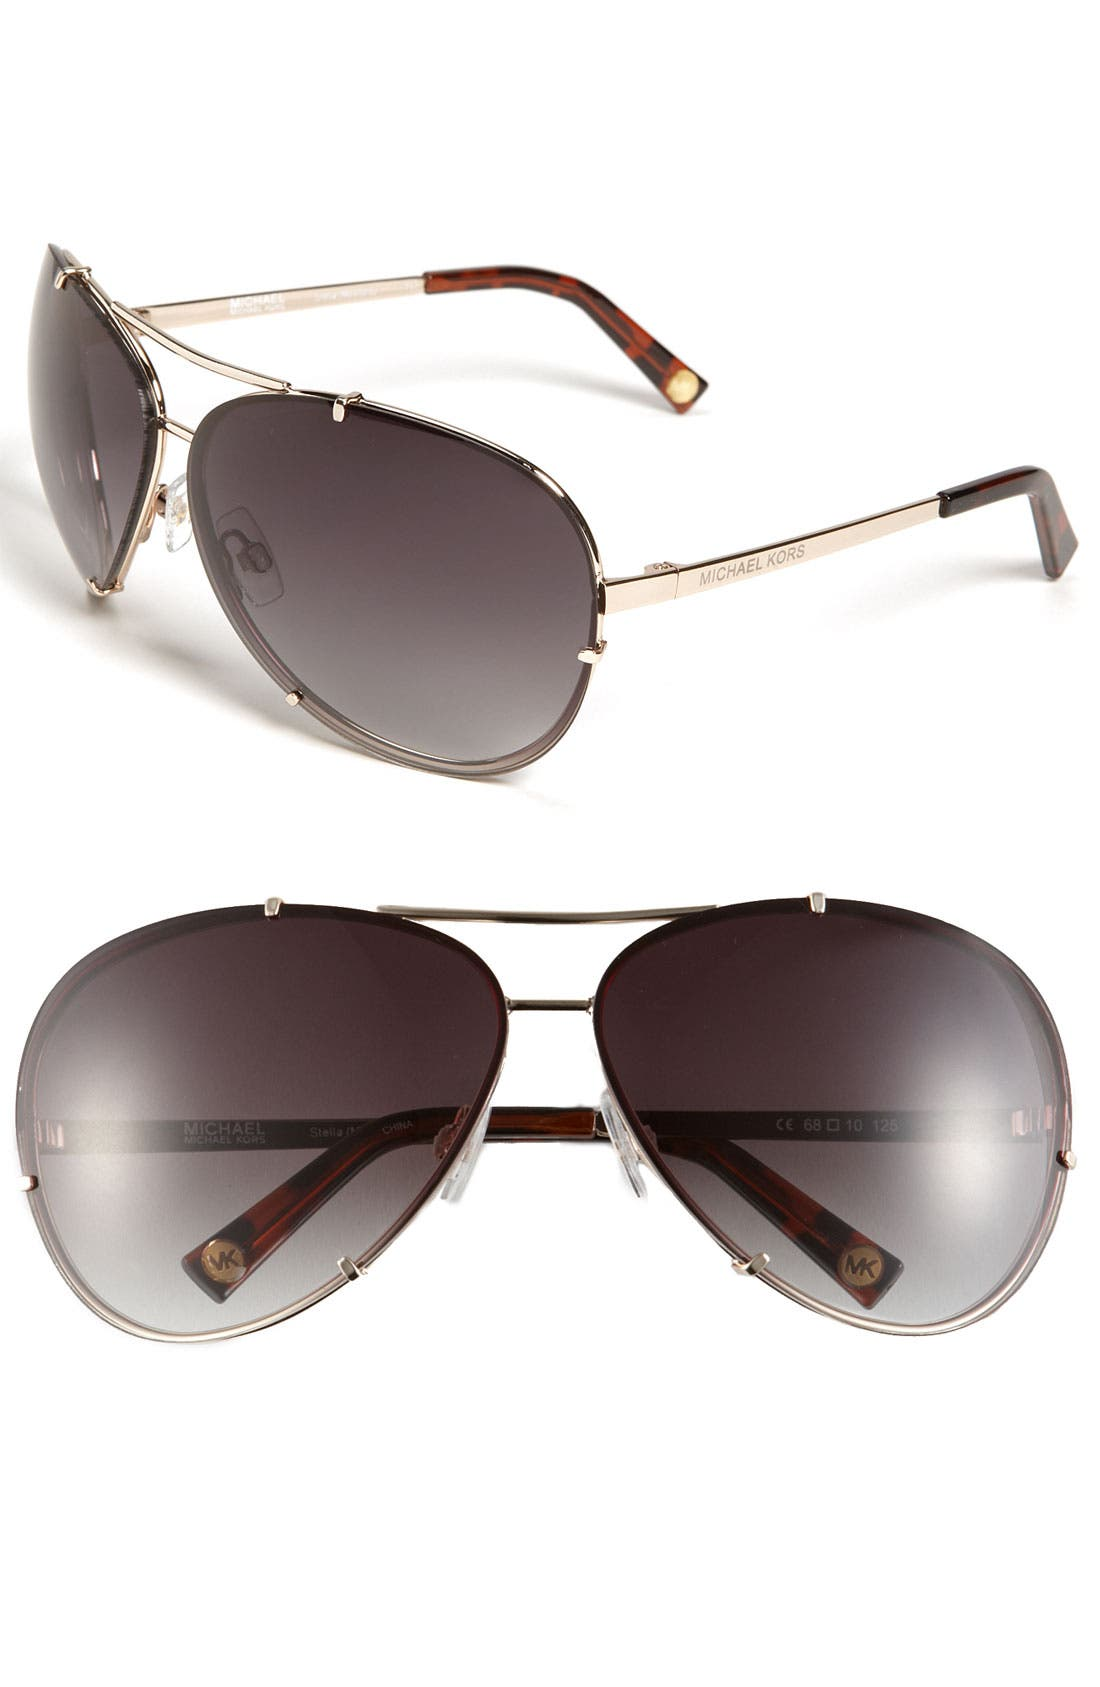 Alternate Image 1 Selected - MICHAEL Michael Kors 'Stella' 68mm Aviator Sunglasses